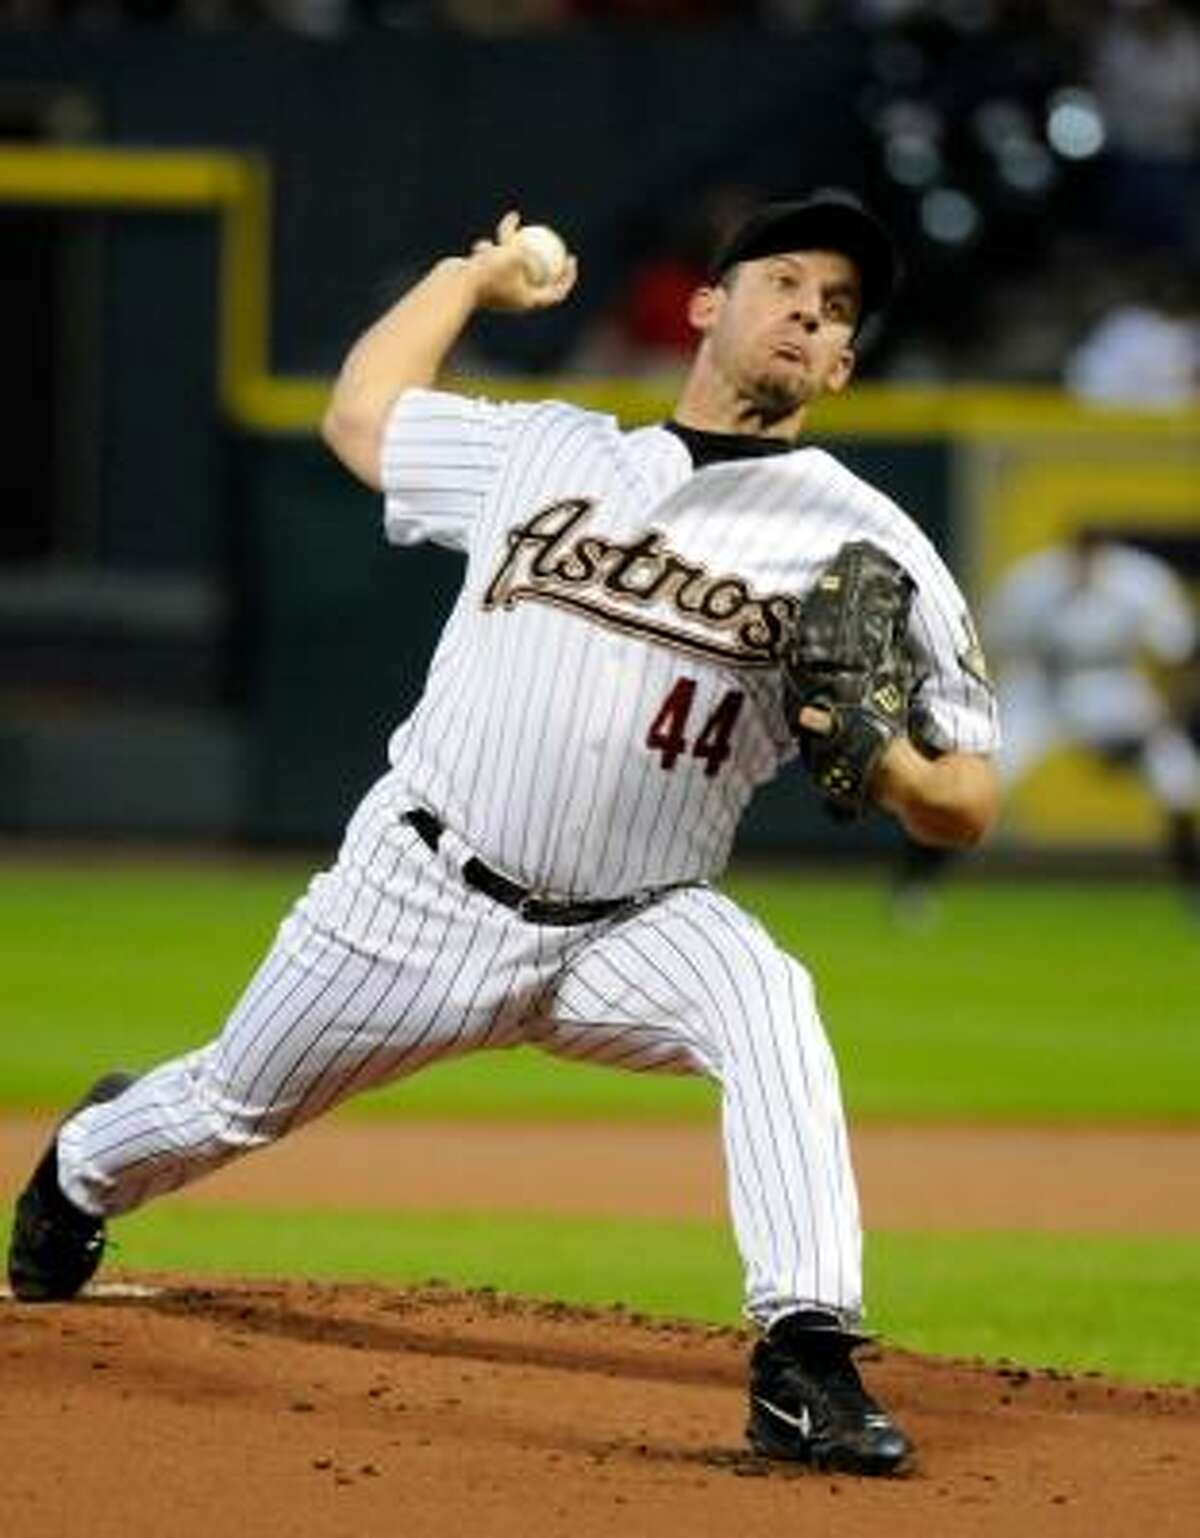 Astros' Roy Oswalt delivers a pitch in the first inning against the Diamondbacks.